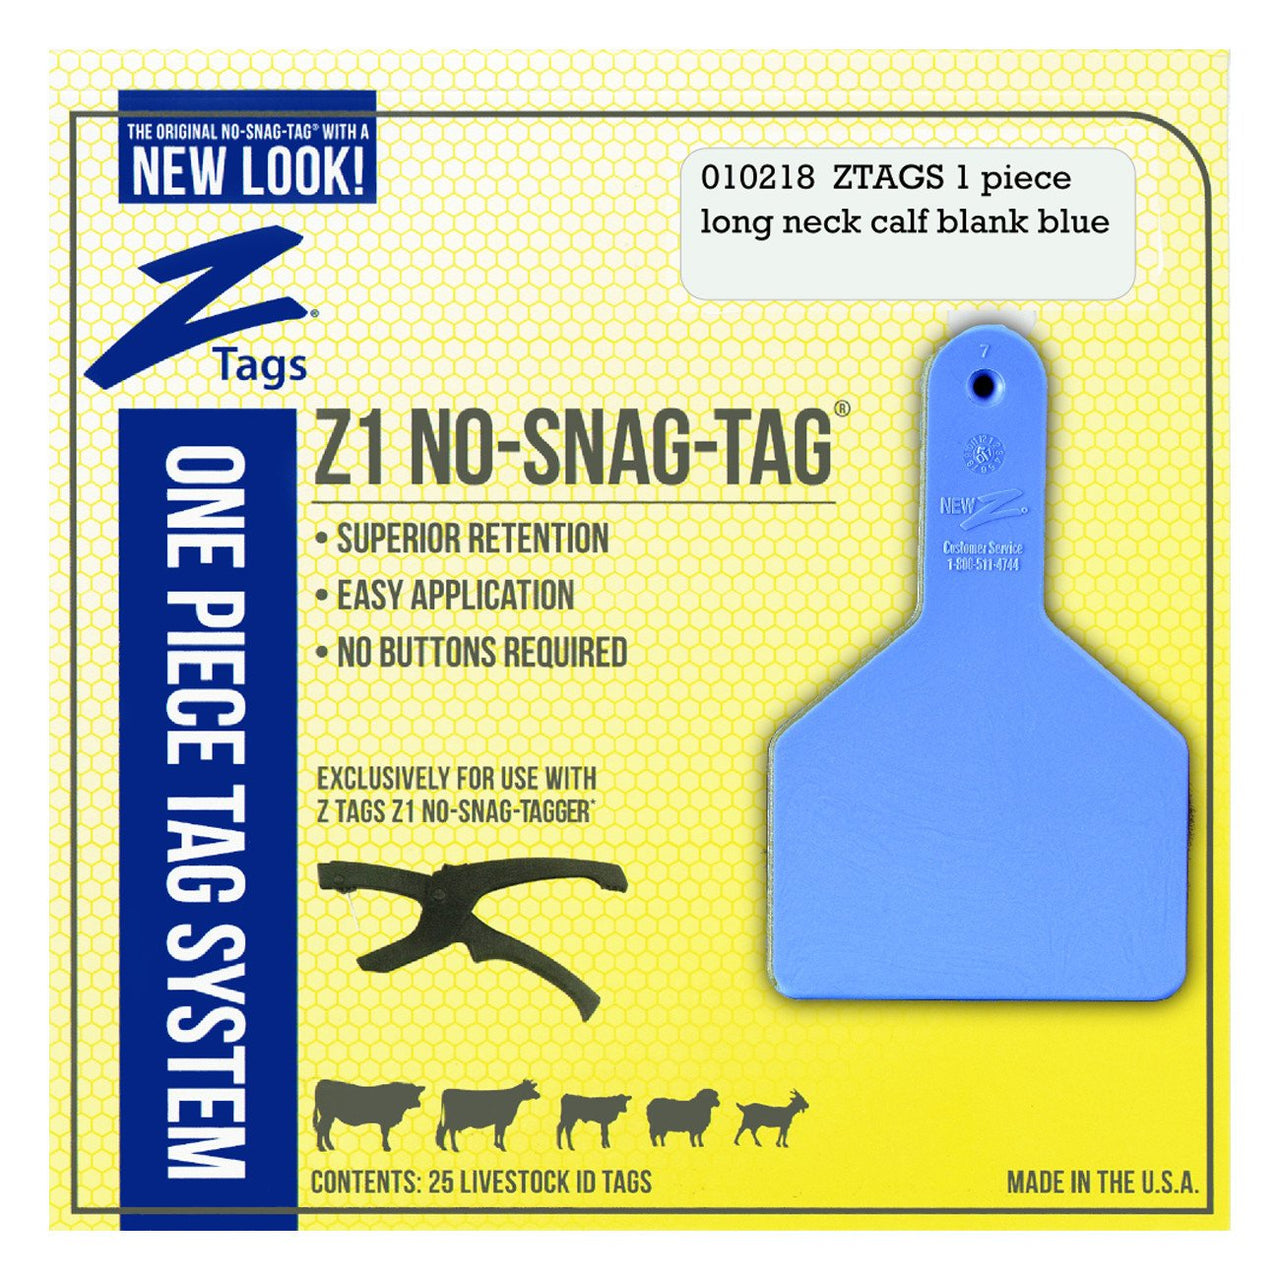 Z Tags 1 piece long neck calf blank (Blue) 25 pack